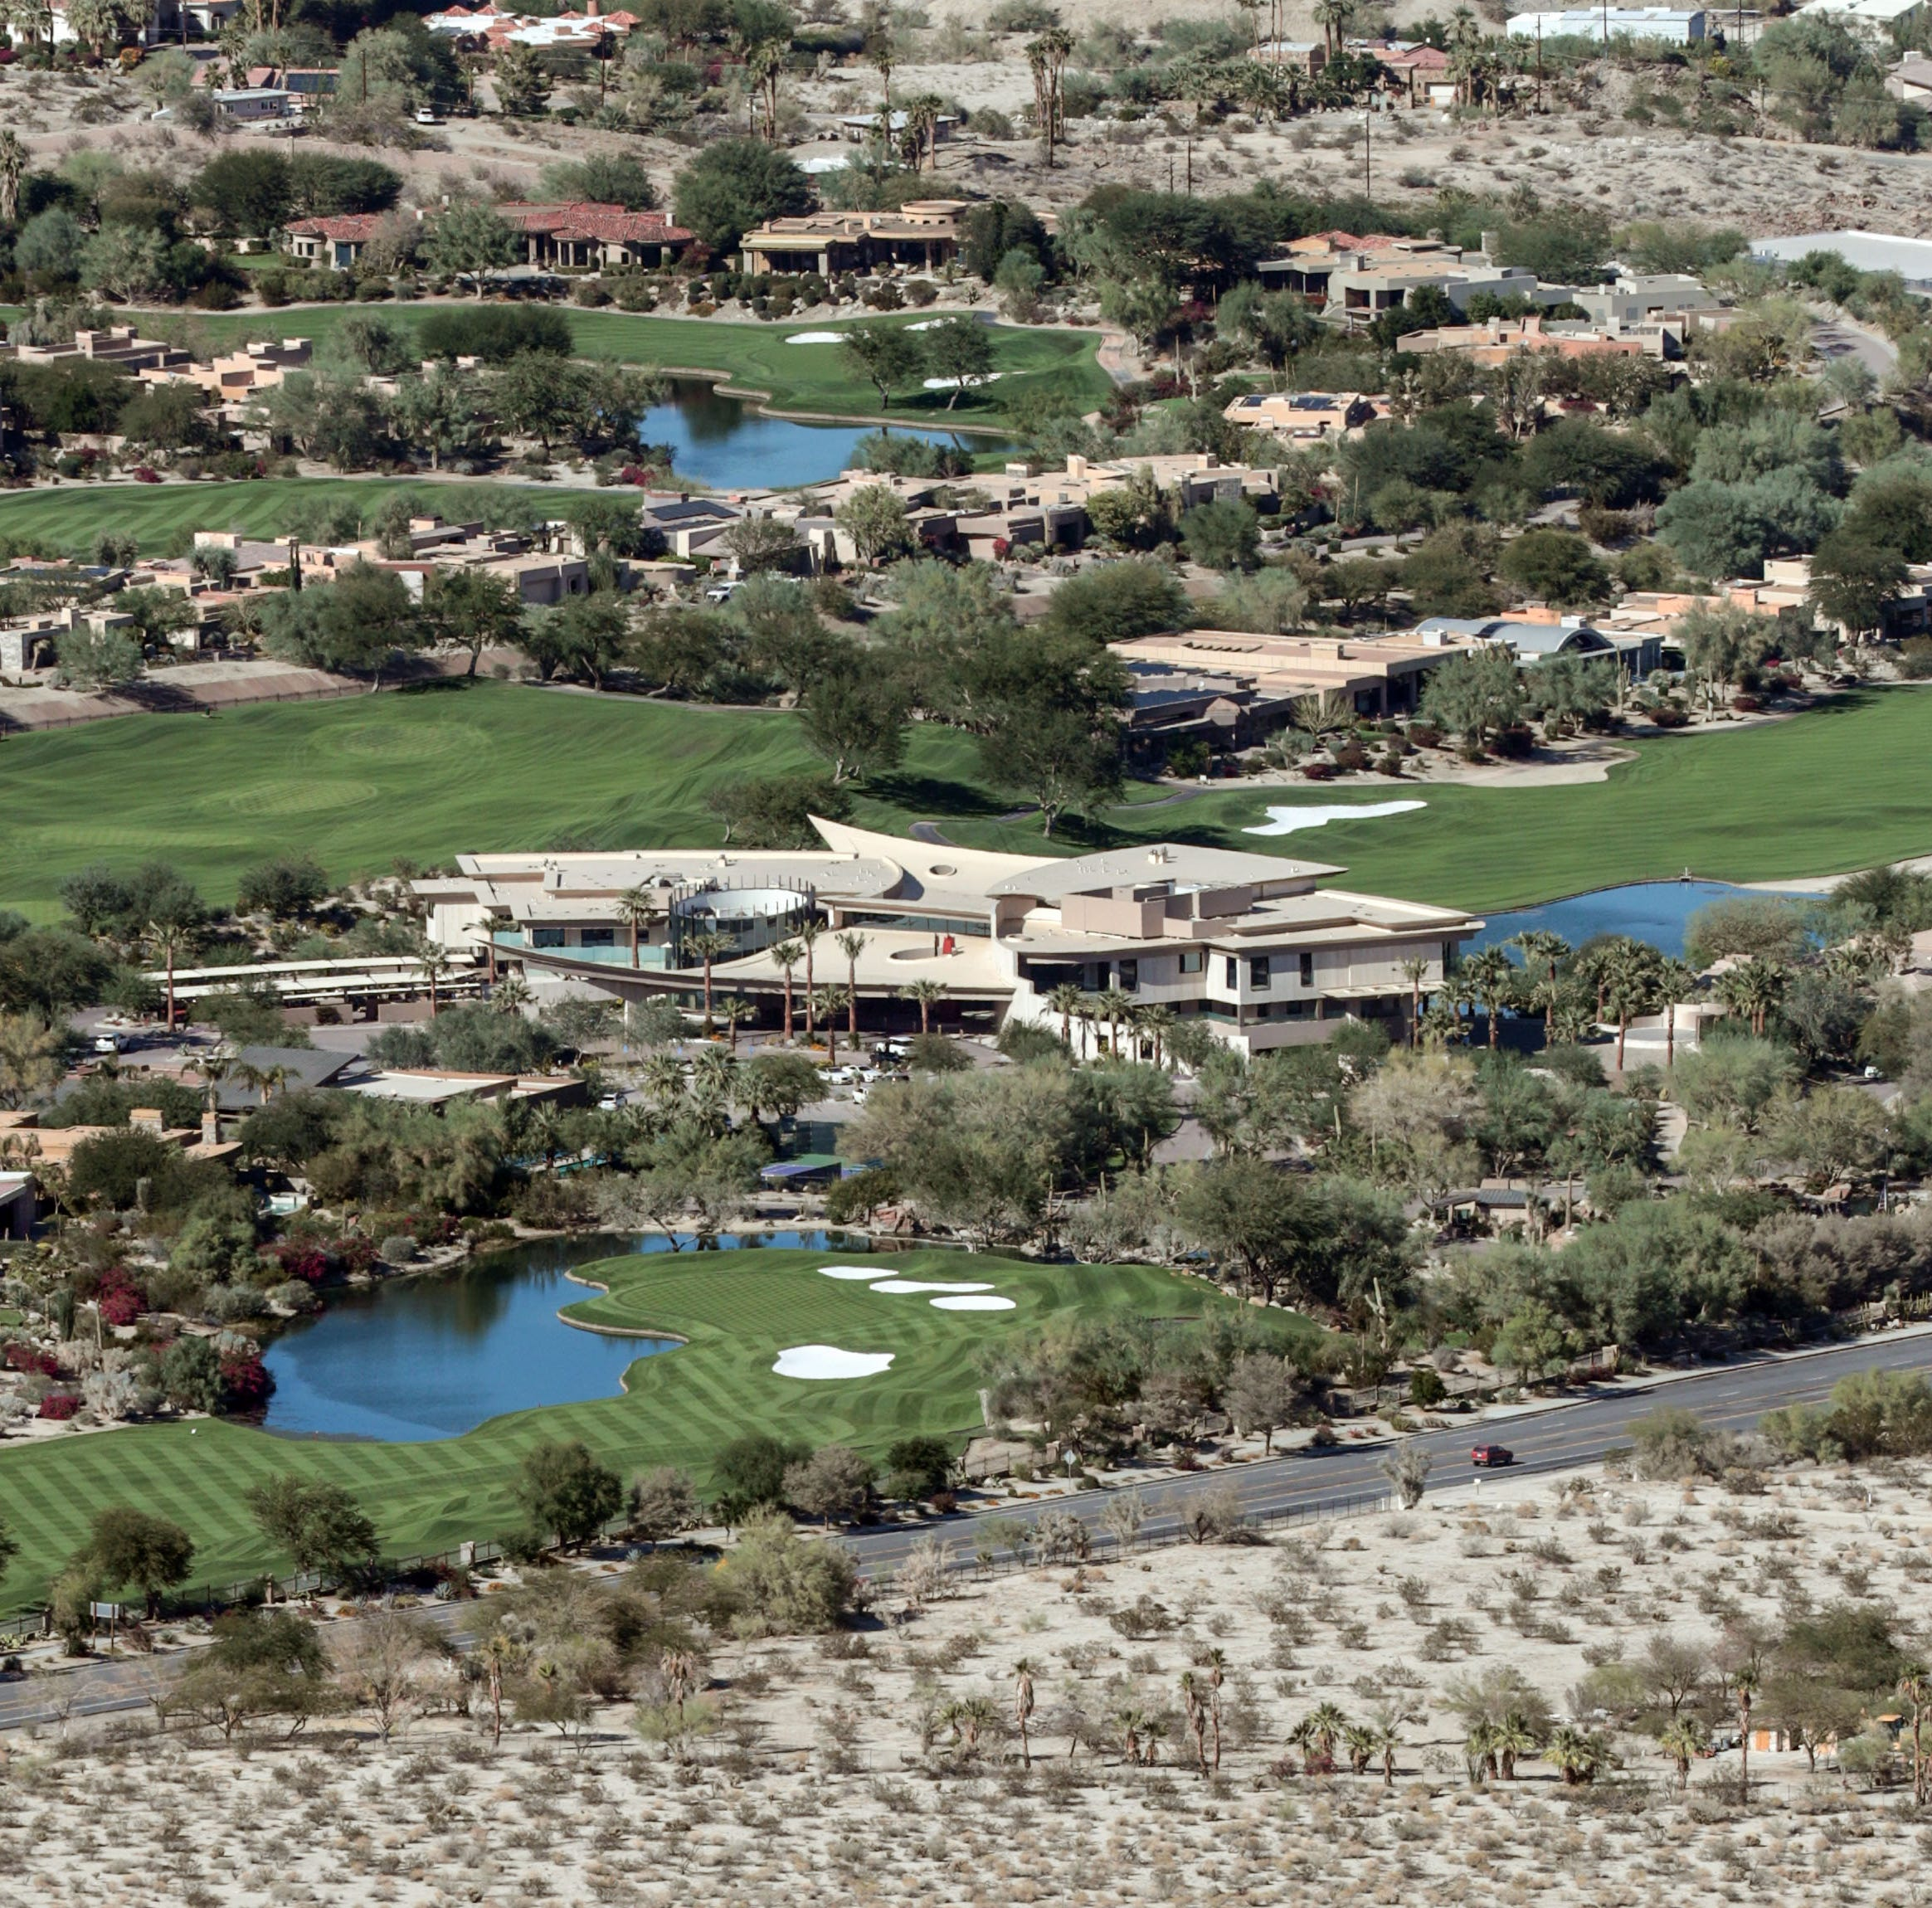 In a golf paradise, investors say a golf cart salesman took them for a financial ride